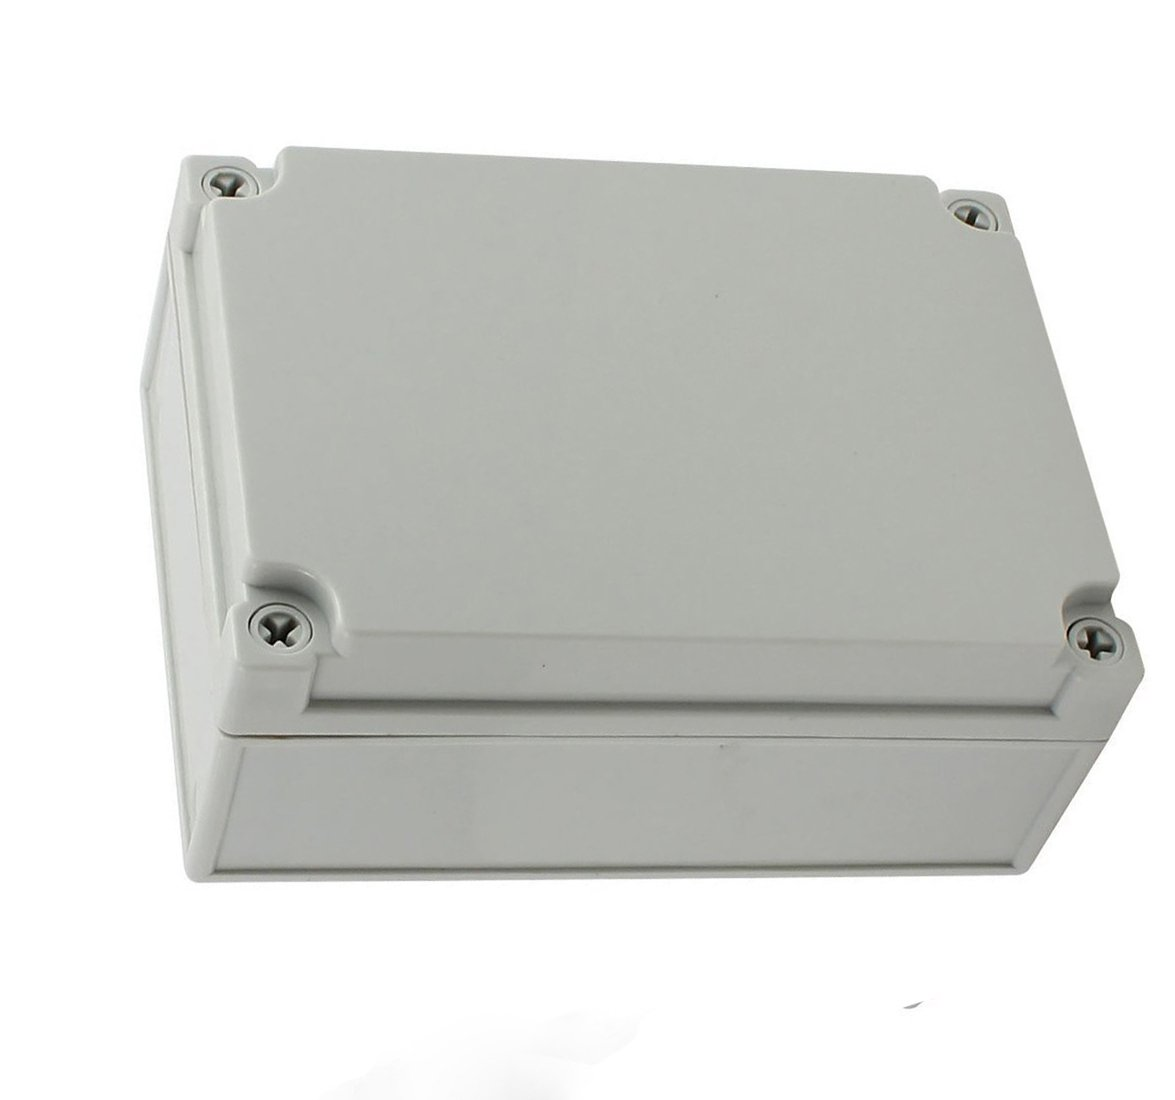 YXQ 175 x 125 x 75mm Electrical Project Case Junction Box IP65 Waterproof ABS DIY Power Outdoor Enclosure Gray (6.9 x 4.9 x 3 inches)